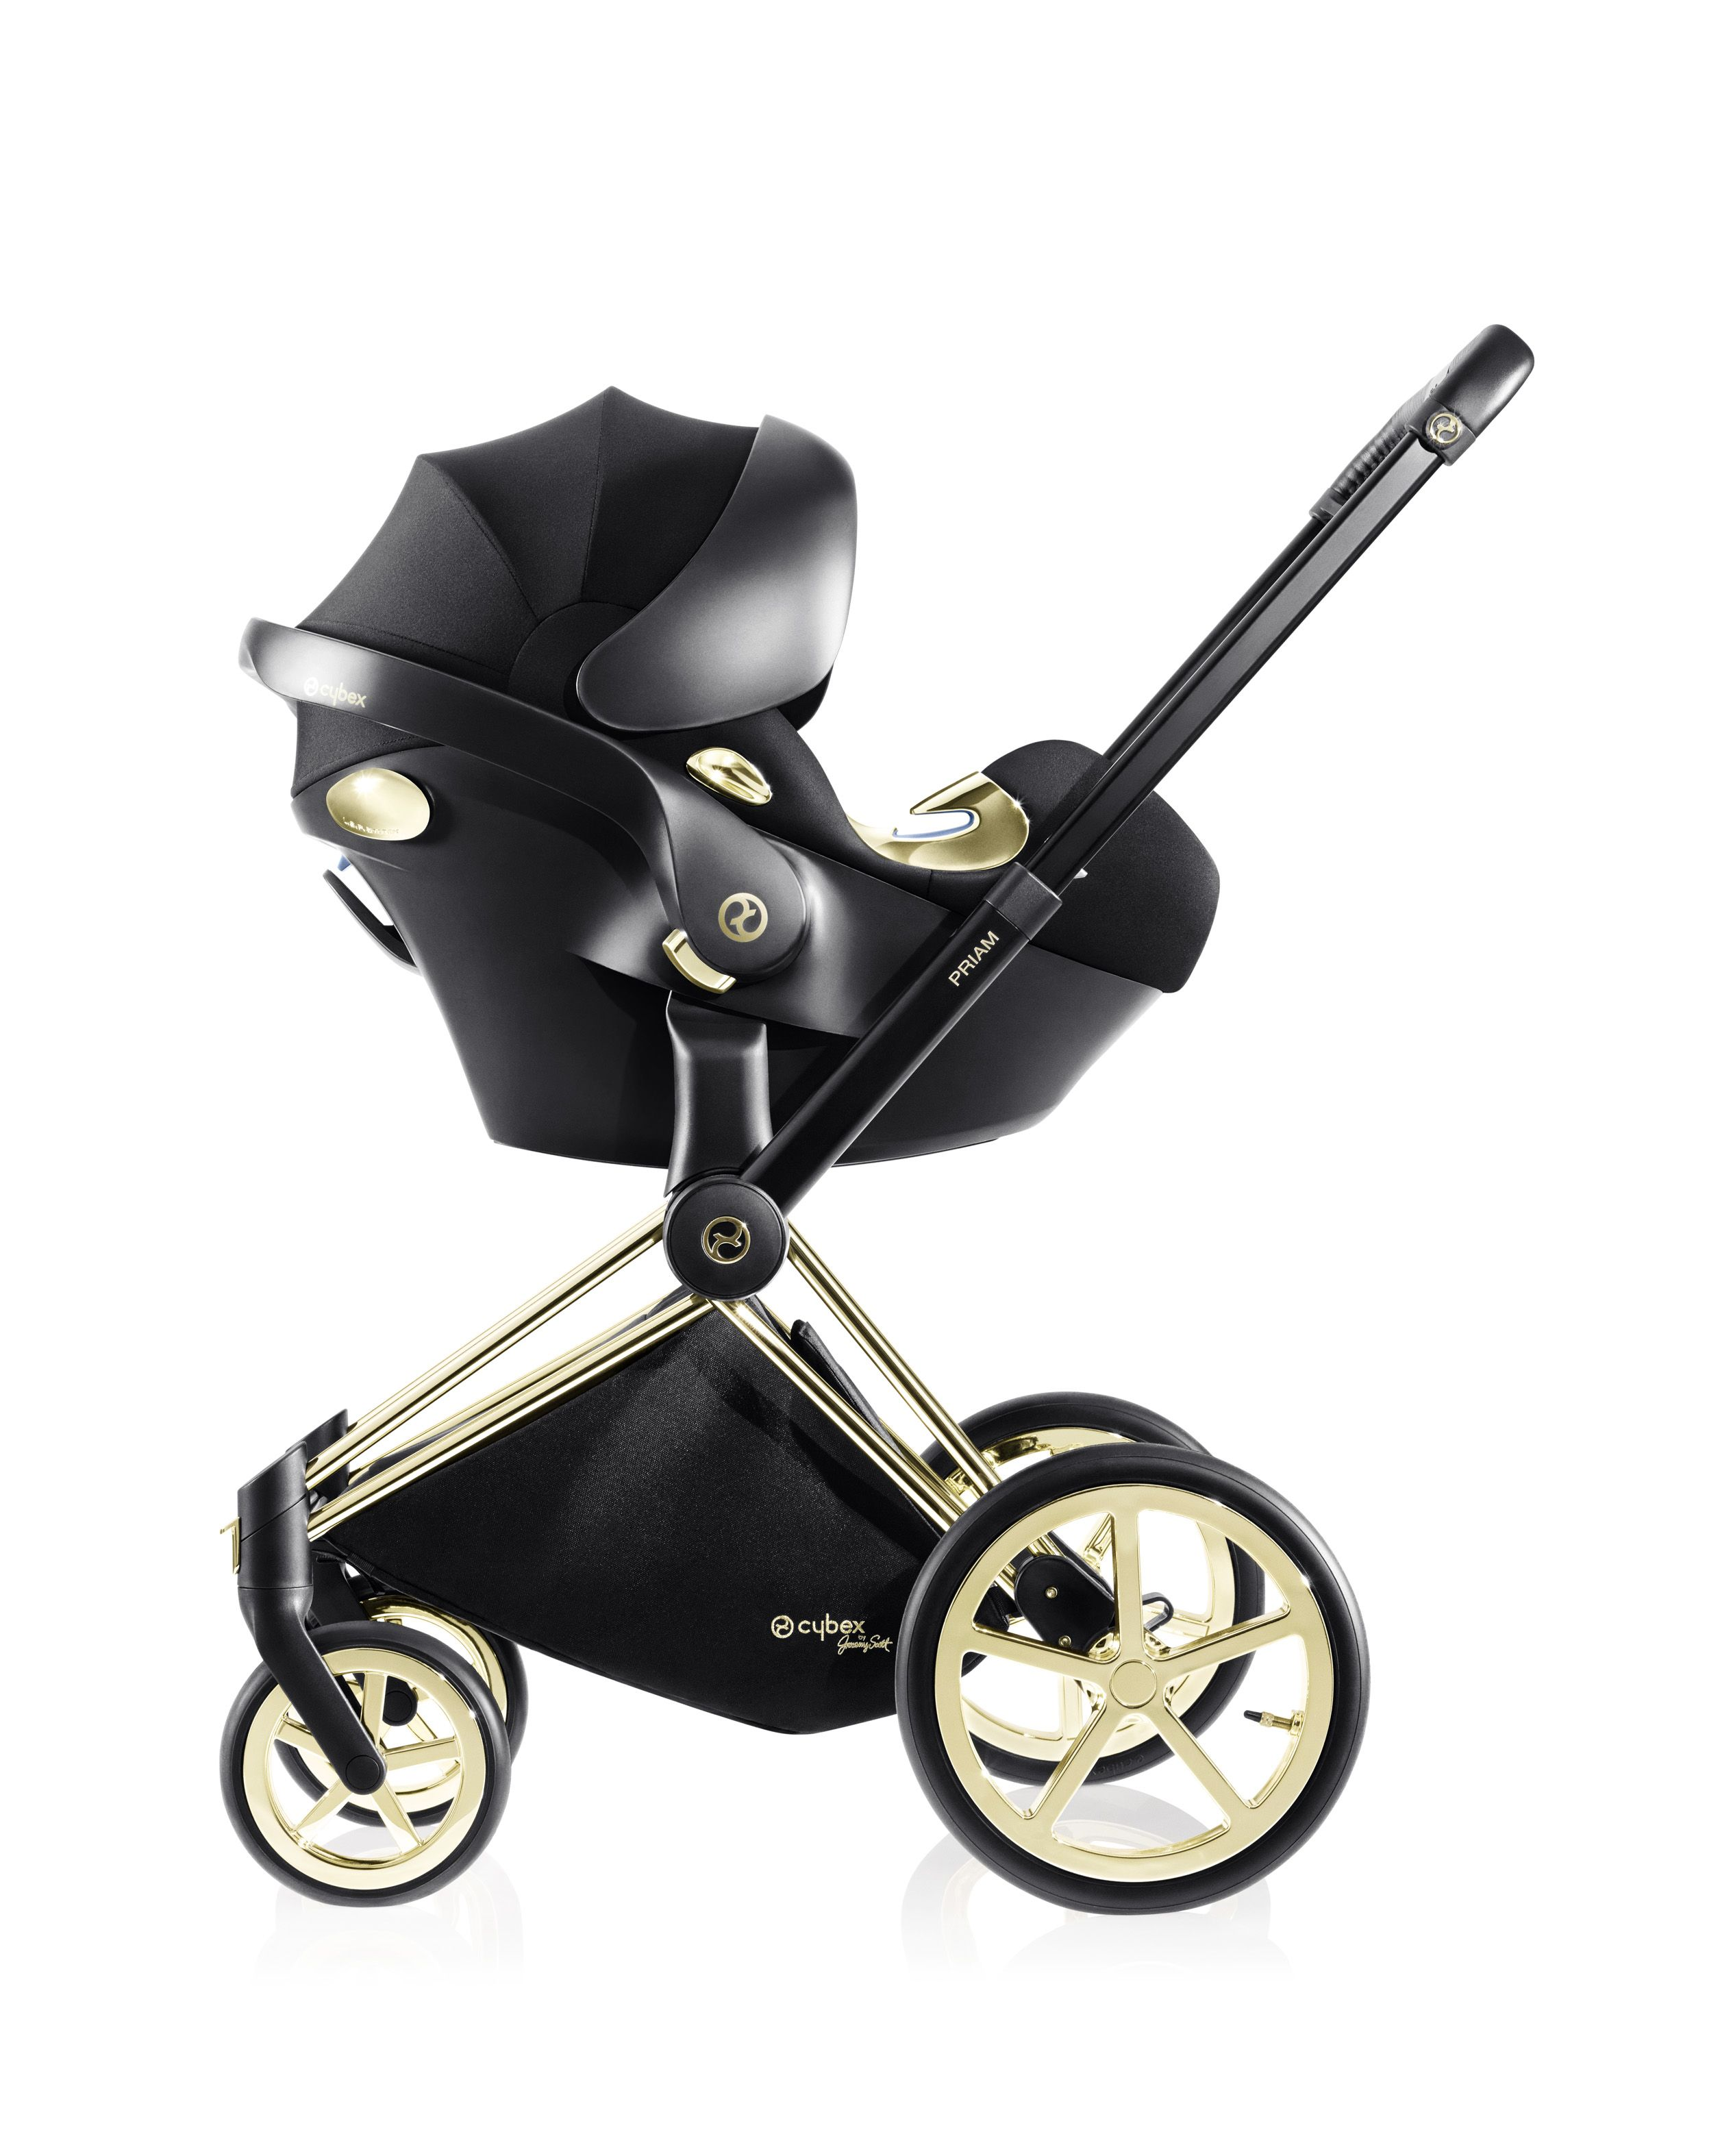 The new Egg Stroller Accessories Child Car Seats Pinterest